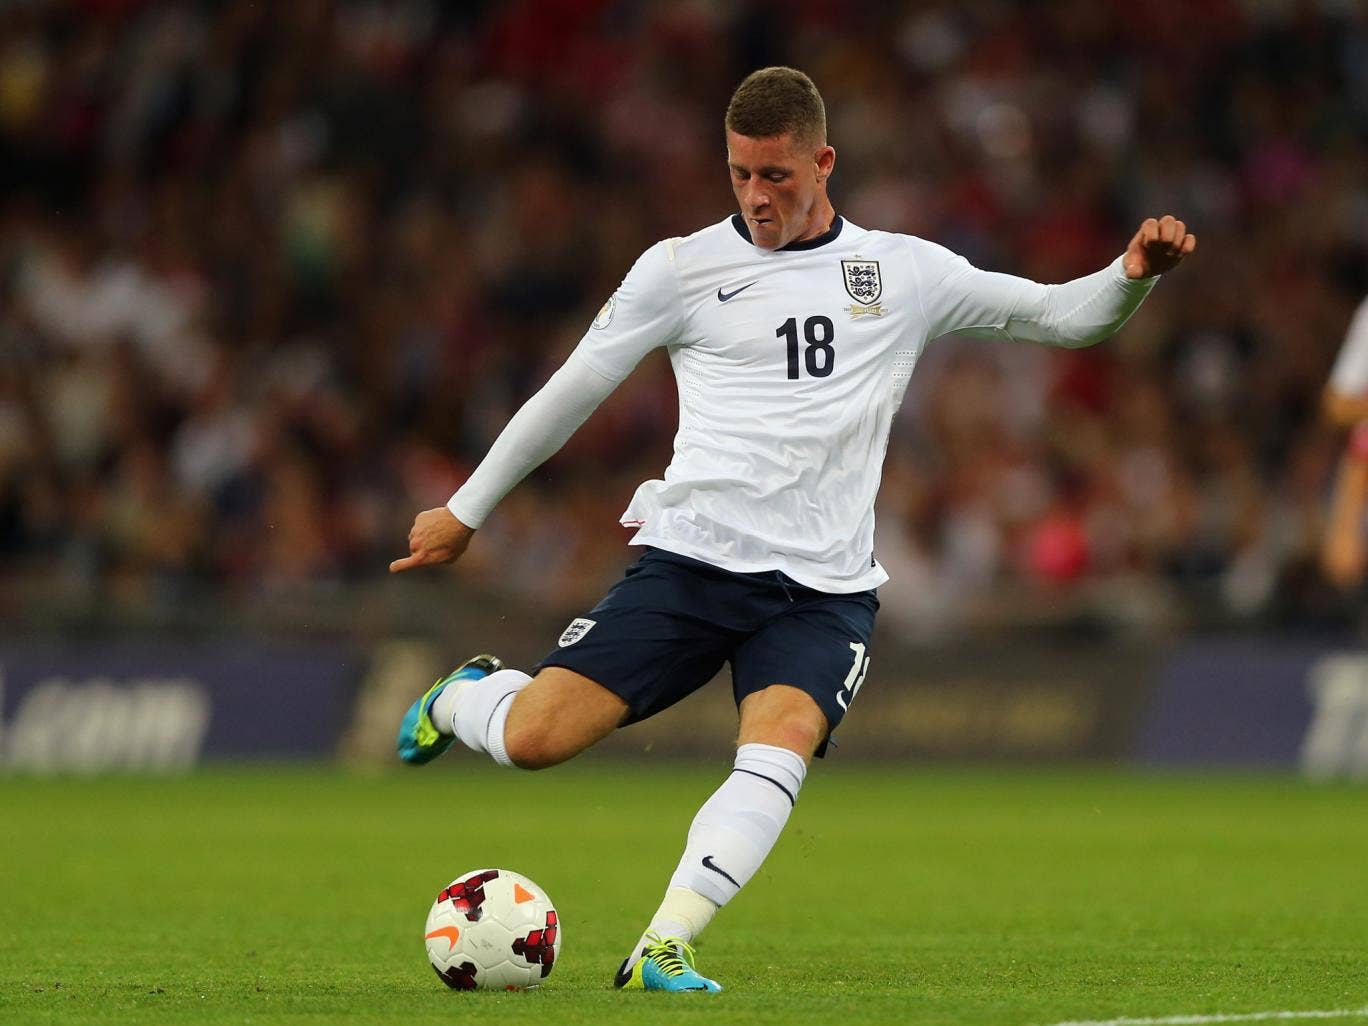 19-year-old Ross Barkley was the latest youngster to make his England debut on Friday against Moldova